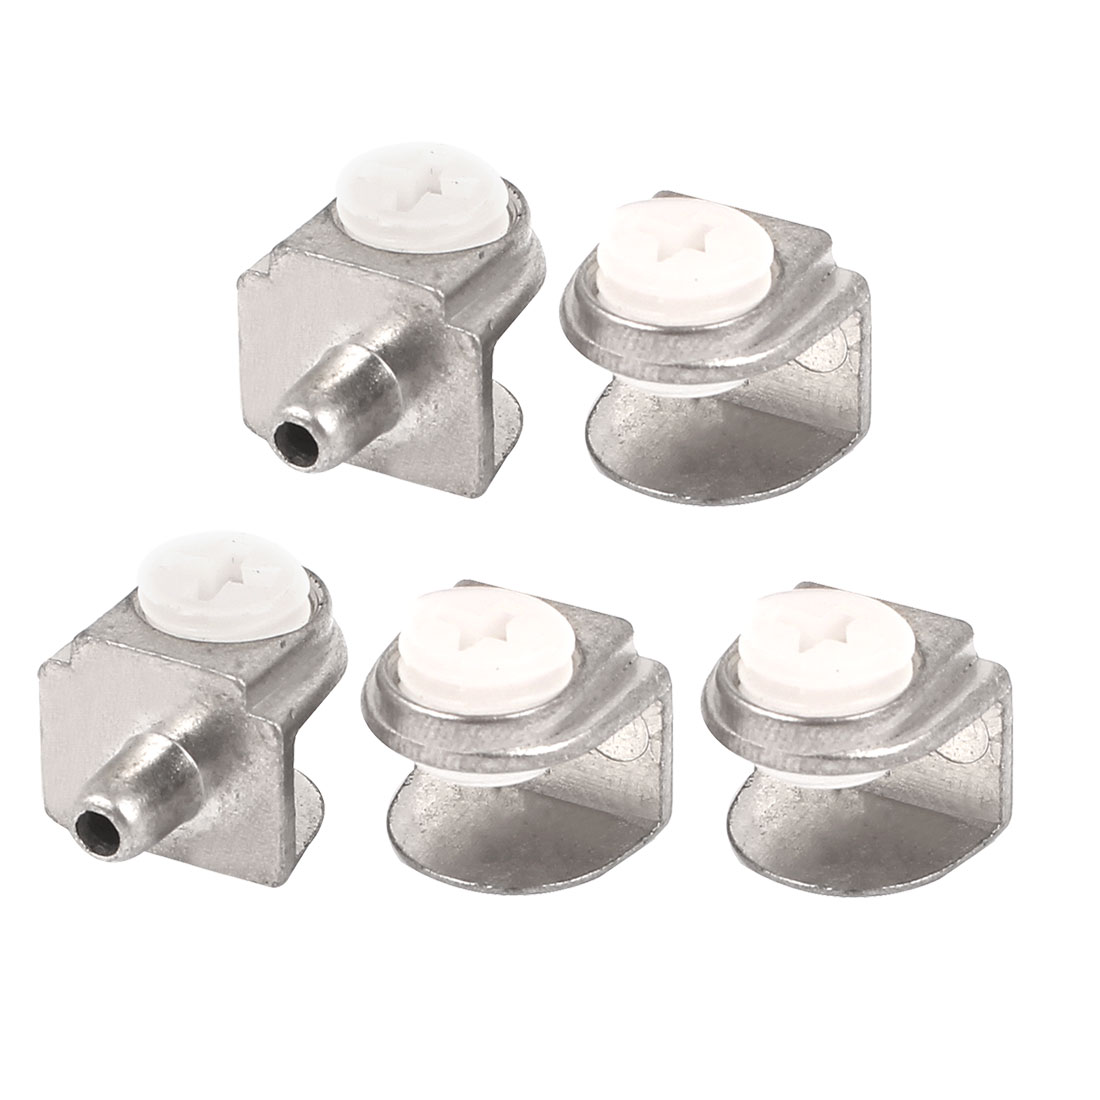 Adjustable 3mm-8mm Thick Half Round Glass Shelf Bracket Clamps Clip Holder 5pcs